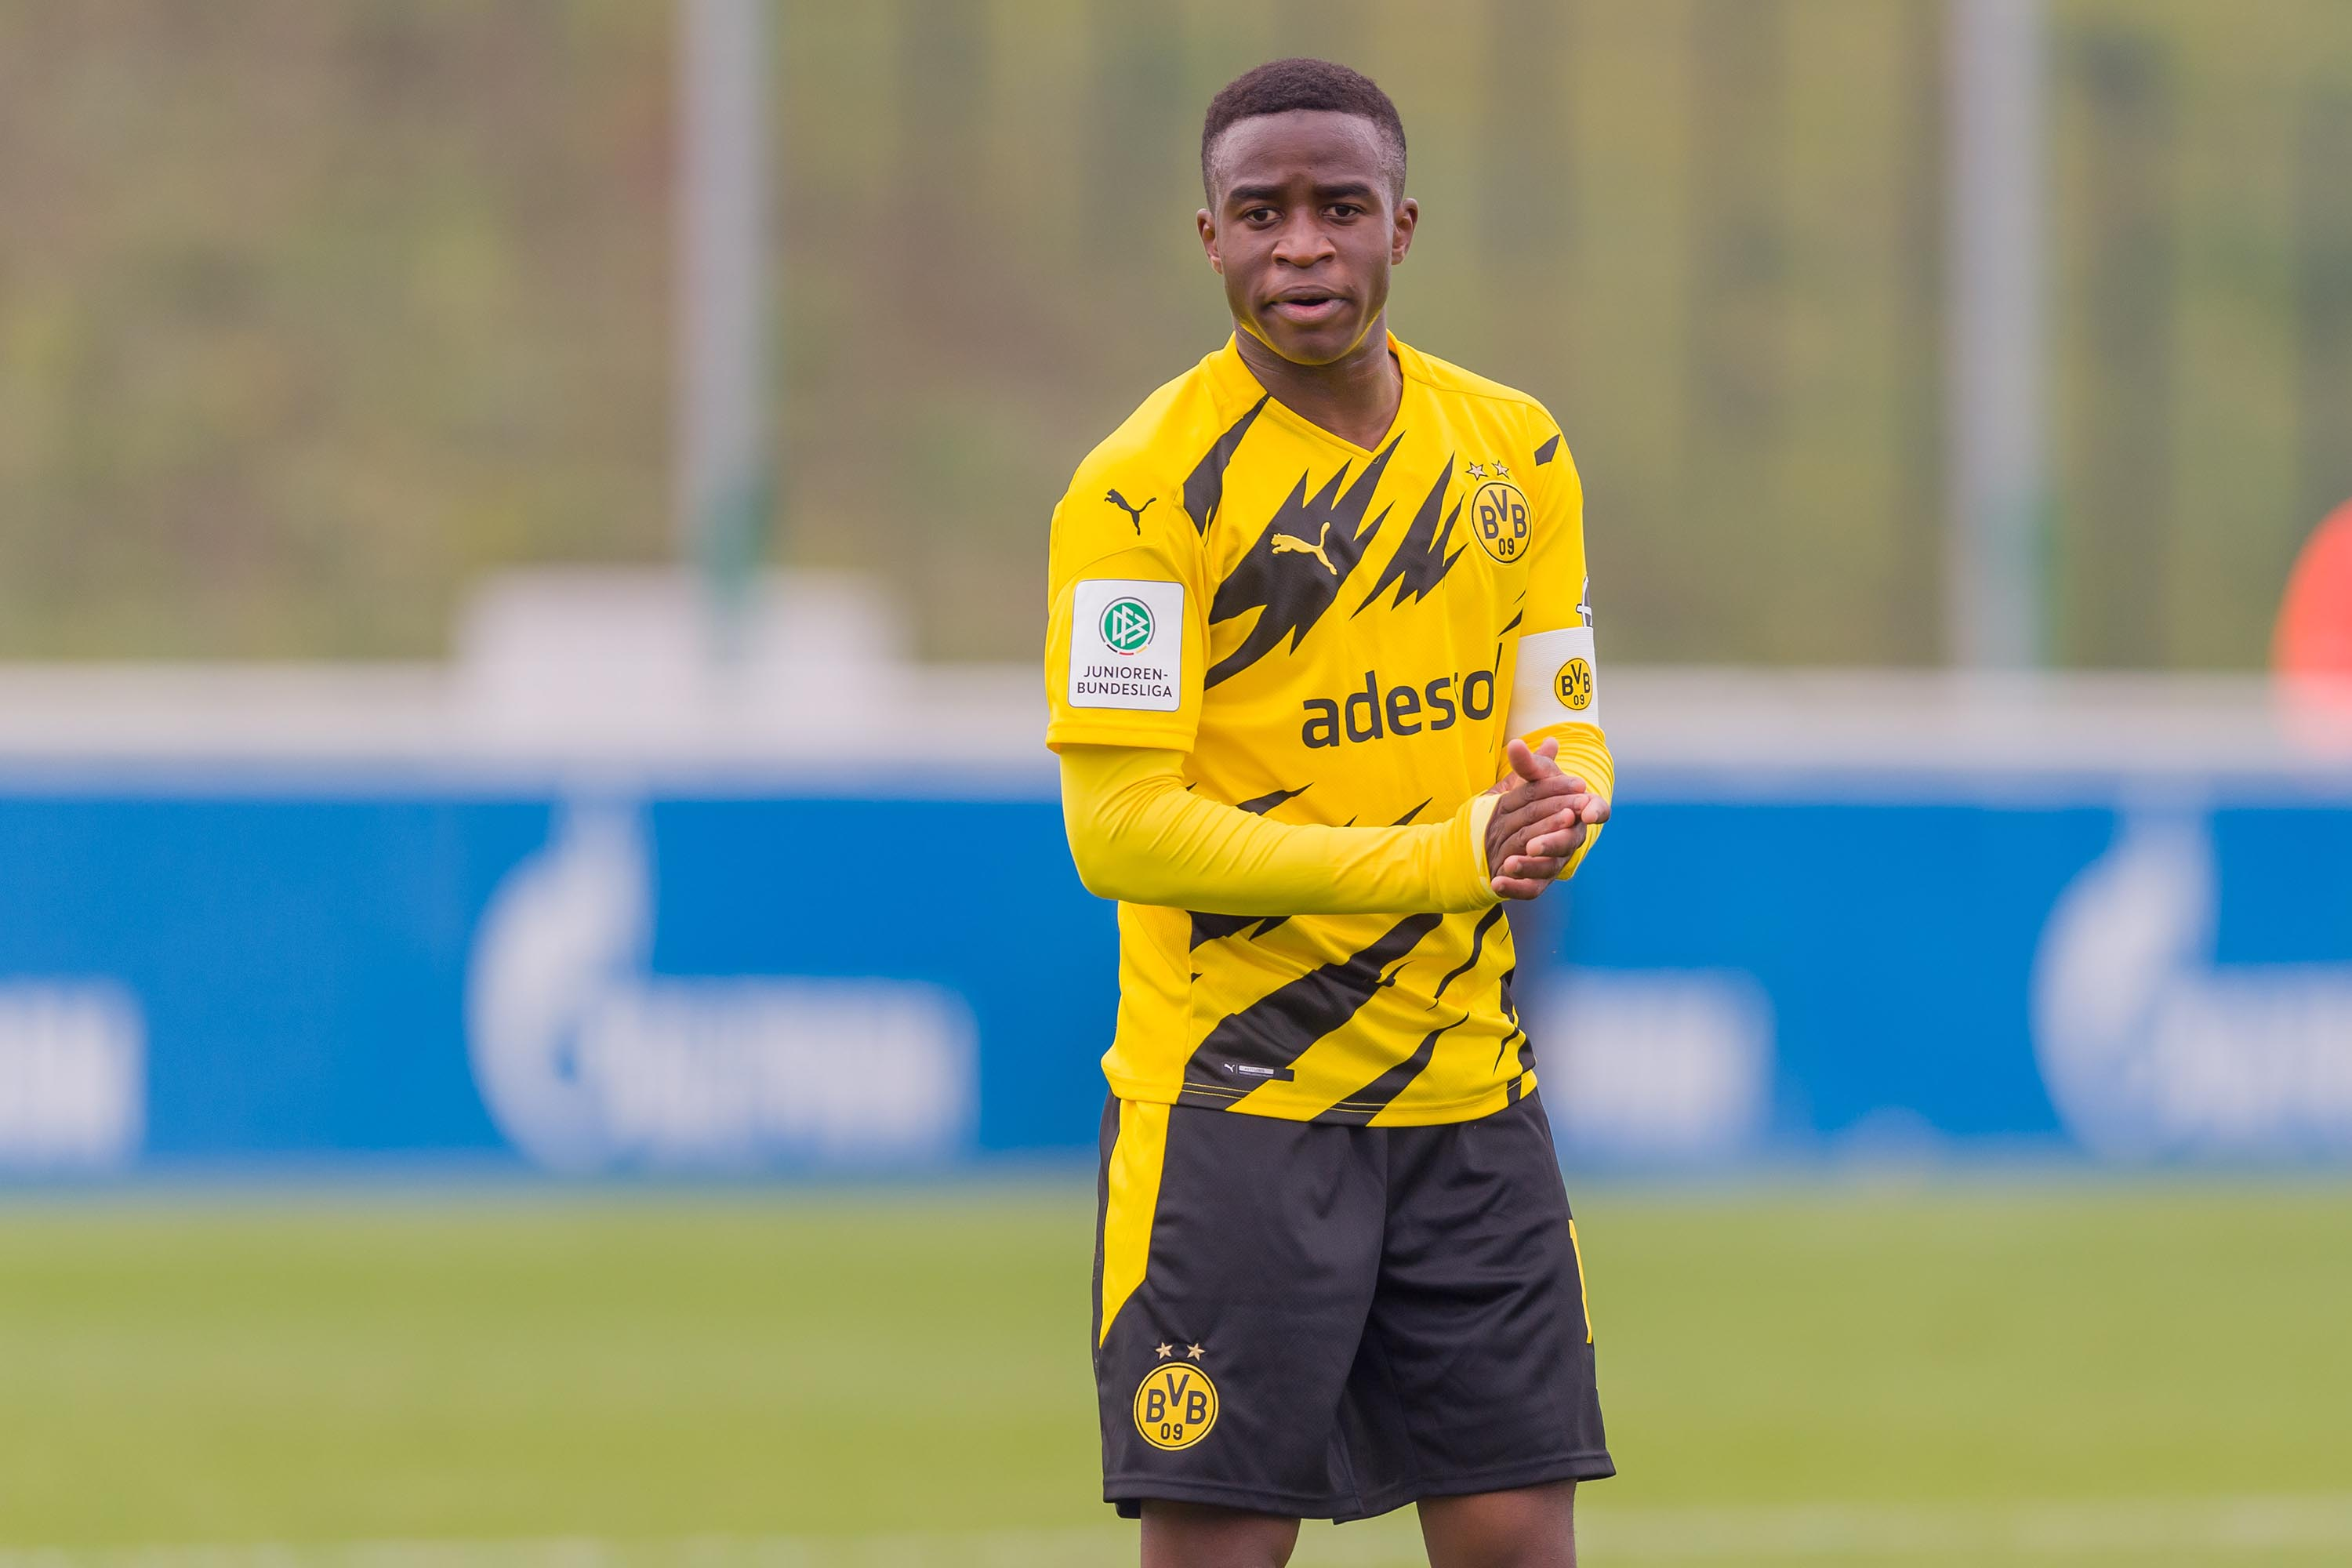 Schalke apologizes after fans racially abuse Borussia Dortmund's 15-year-old star Youssoufa Moukoko